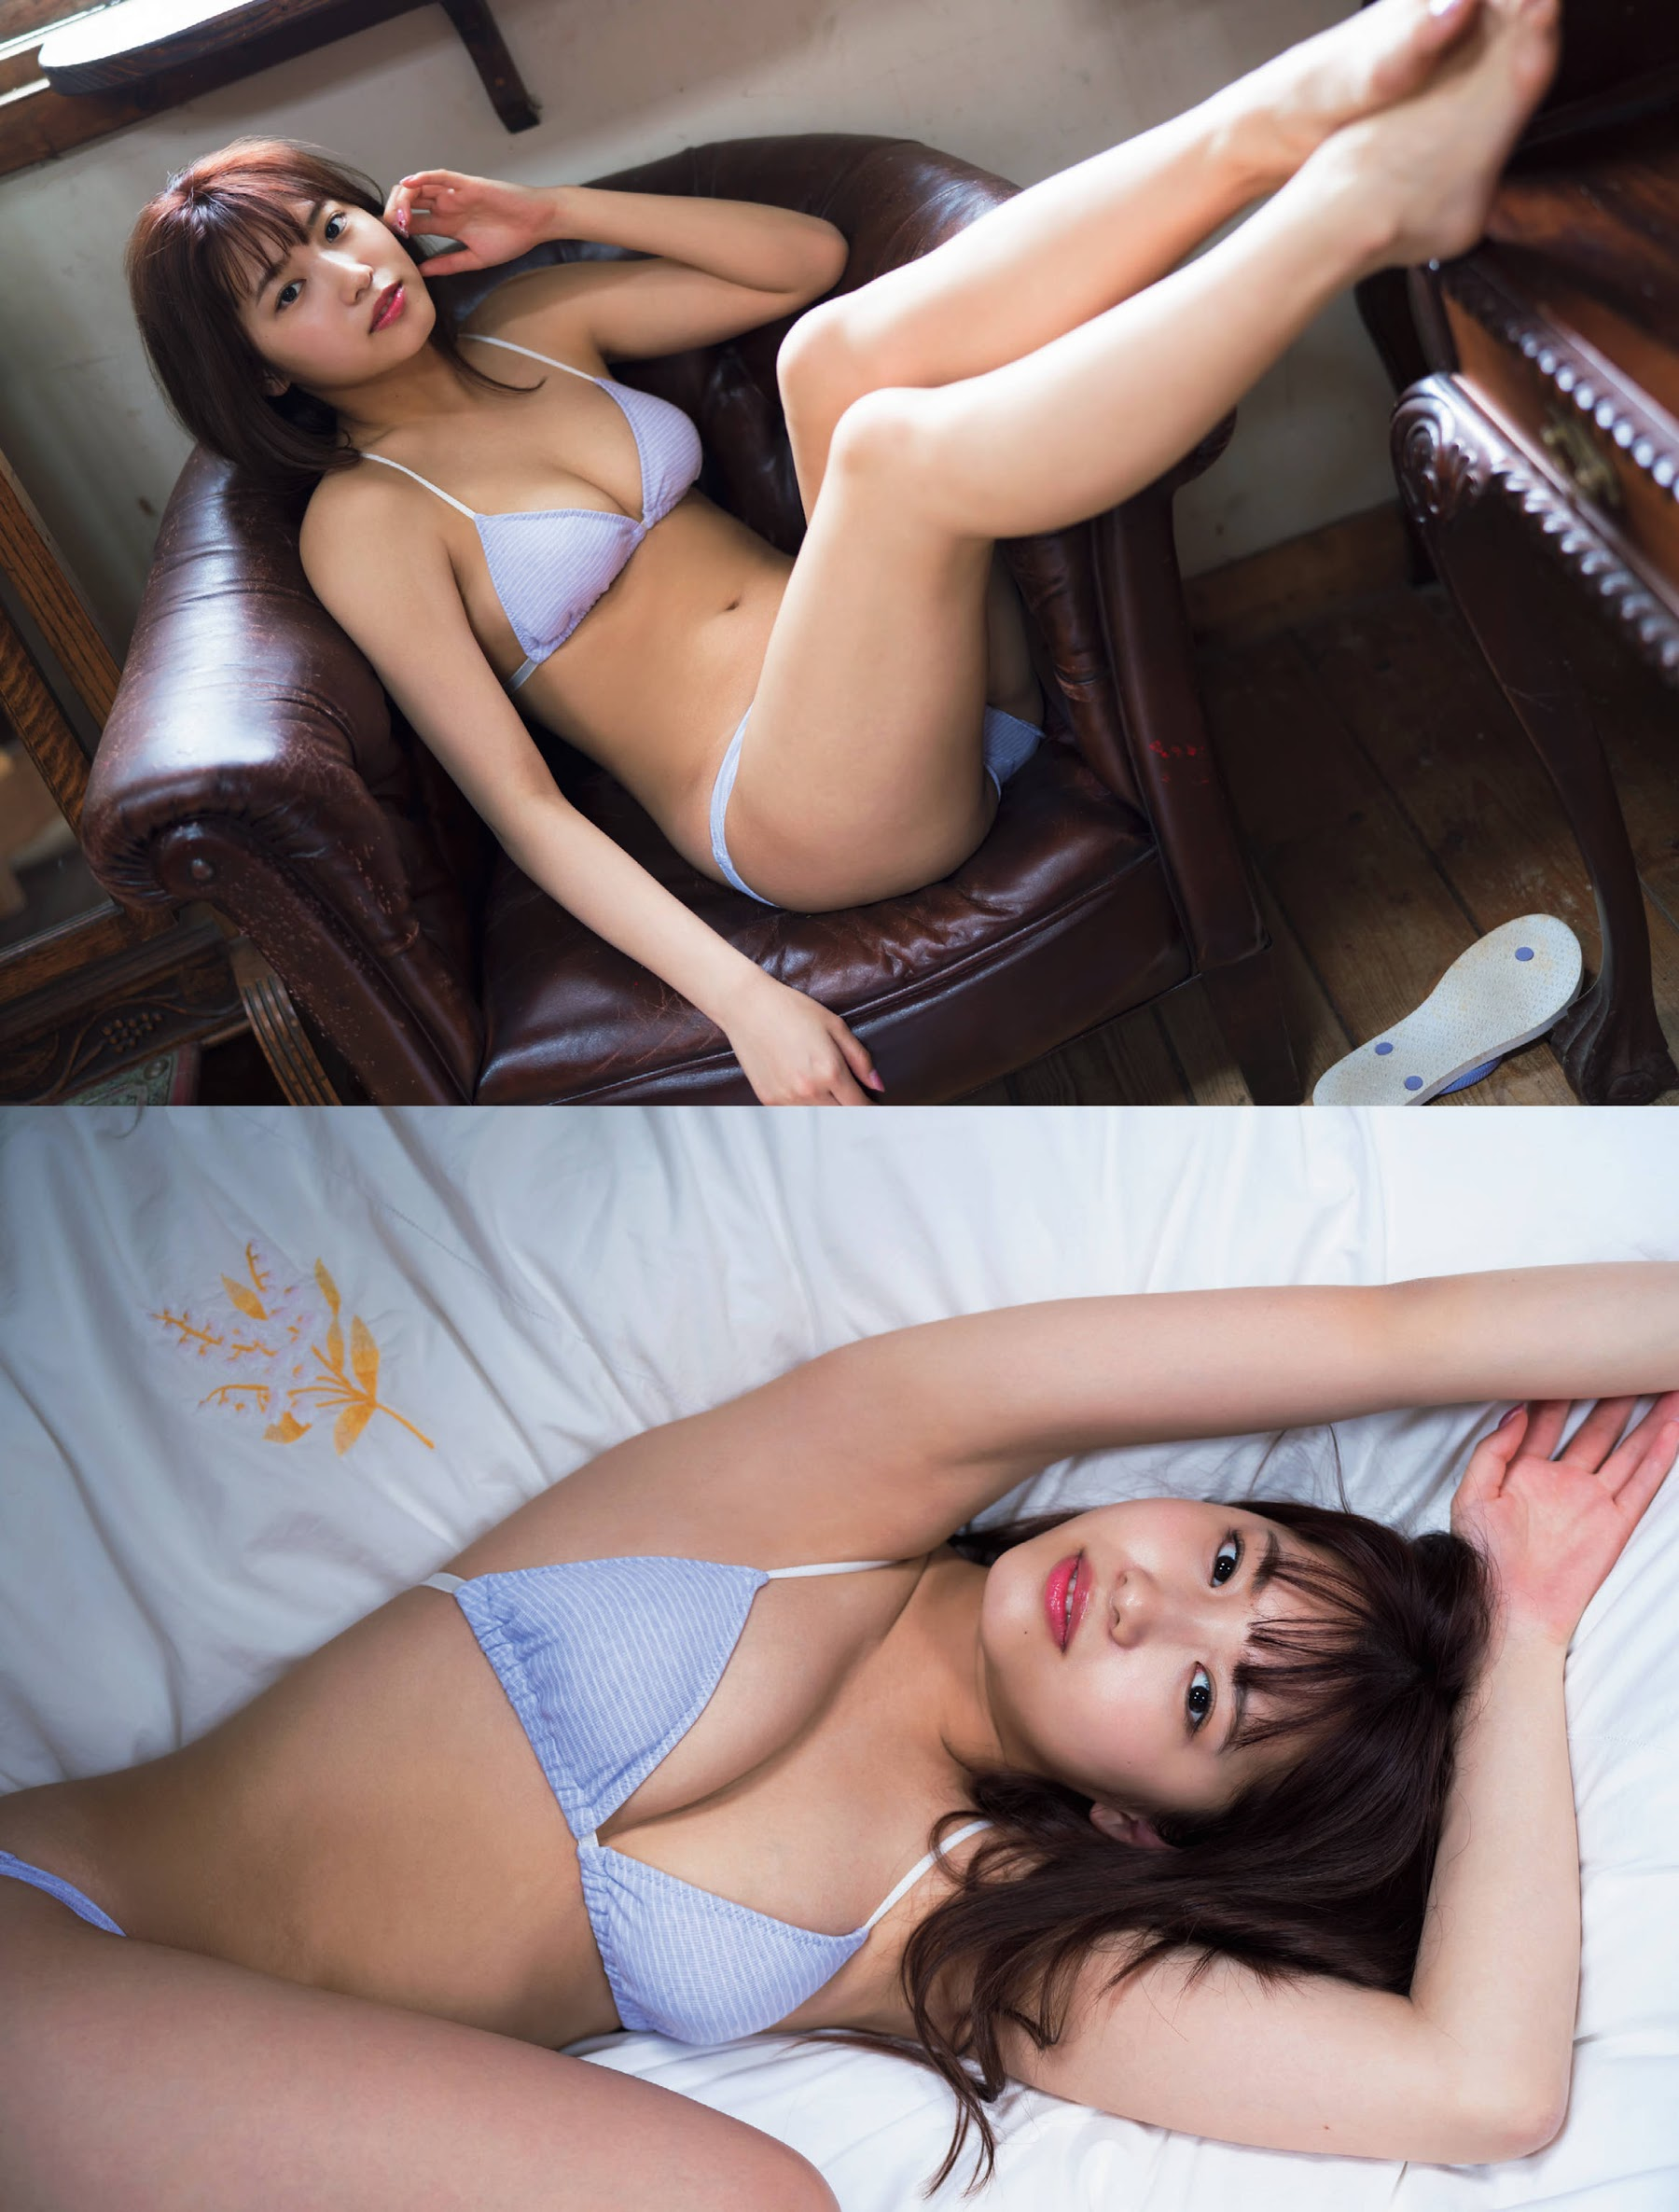 Youngest member of College 18 Airi Furuta 16 years old Bikini after school 2019006